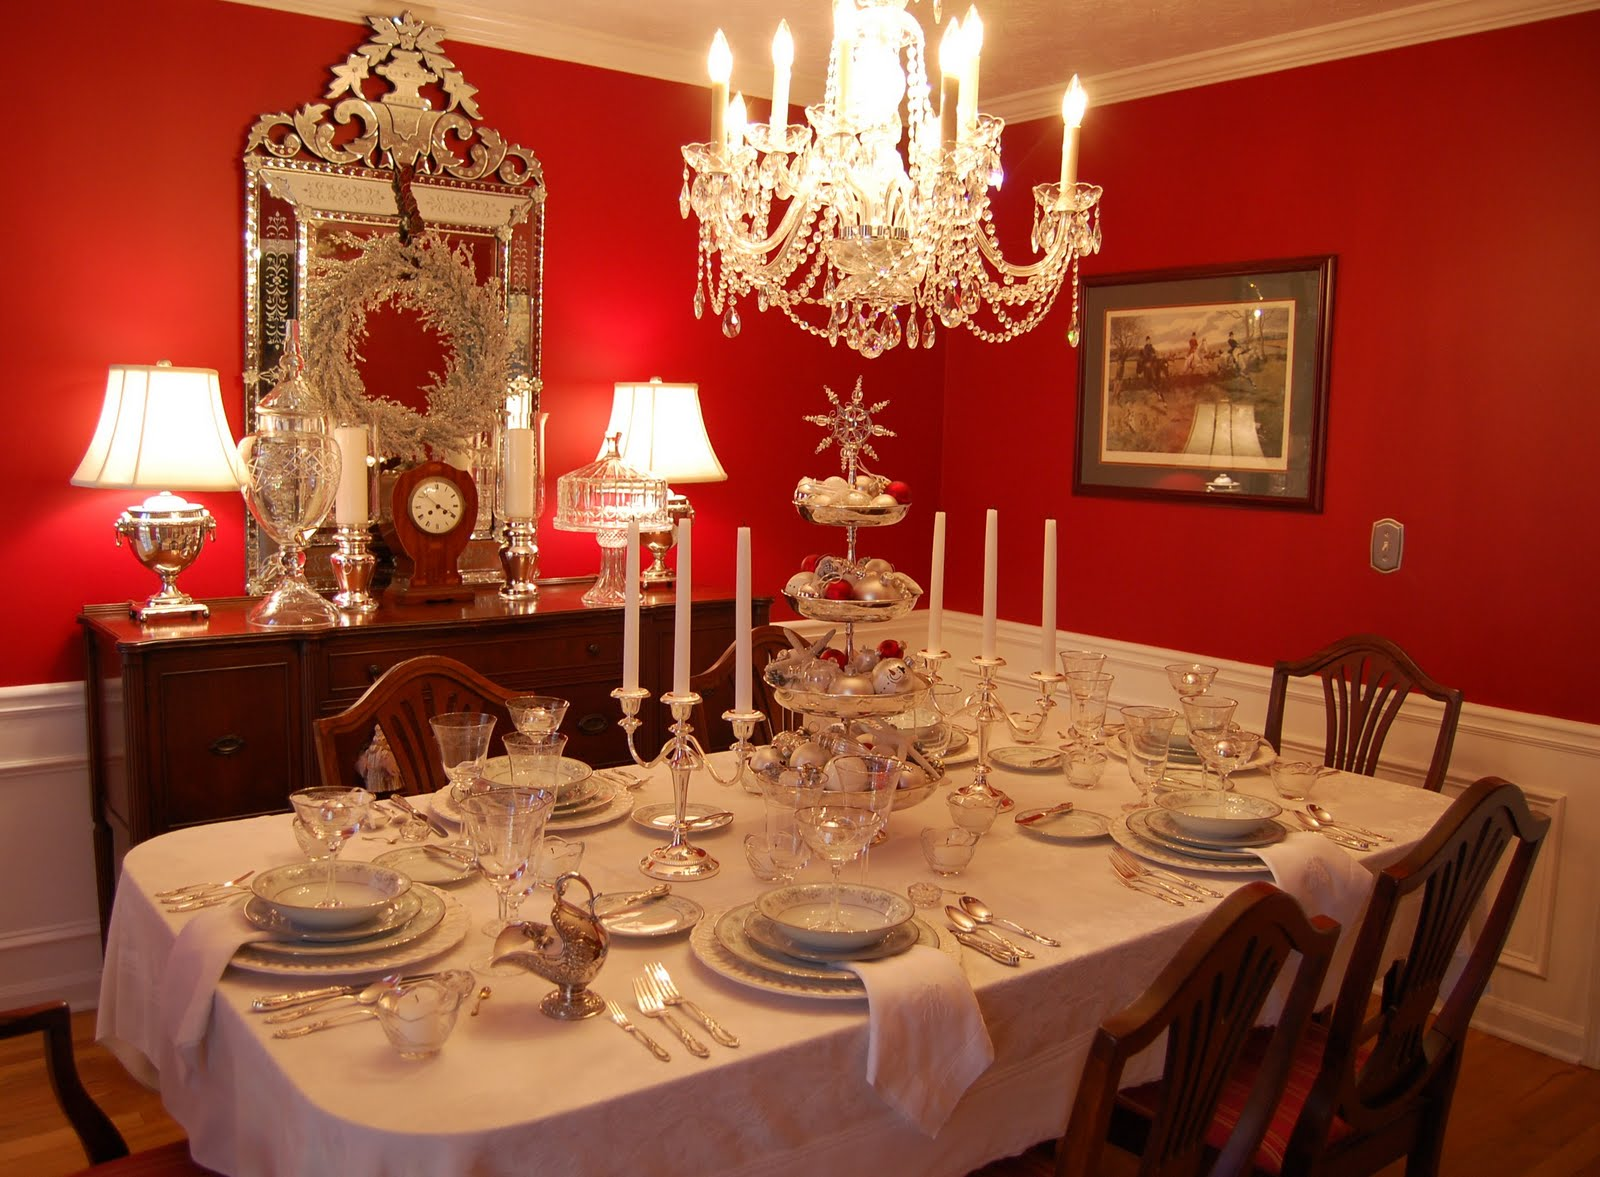 Dining Table Set Up Ideas Christmas Tablescape Table Setting With Silver Tiered